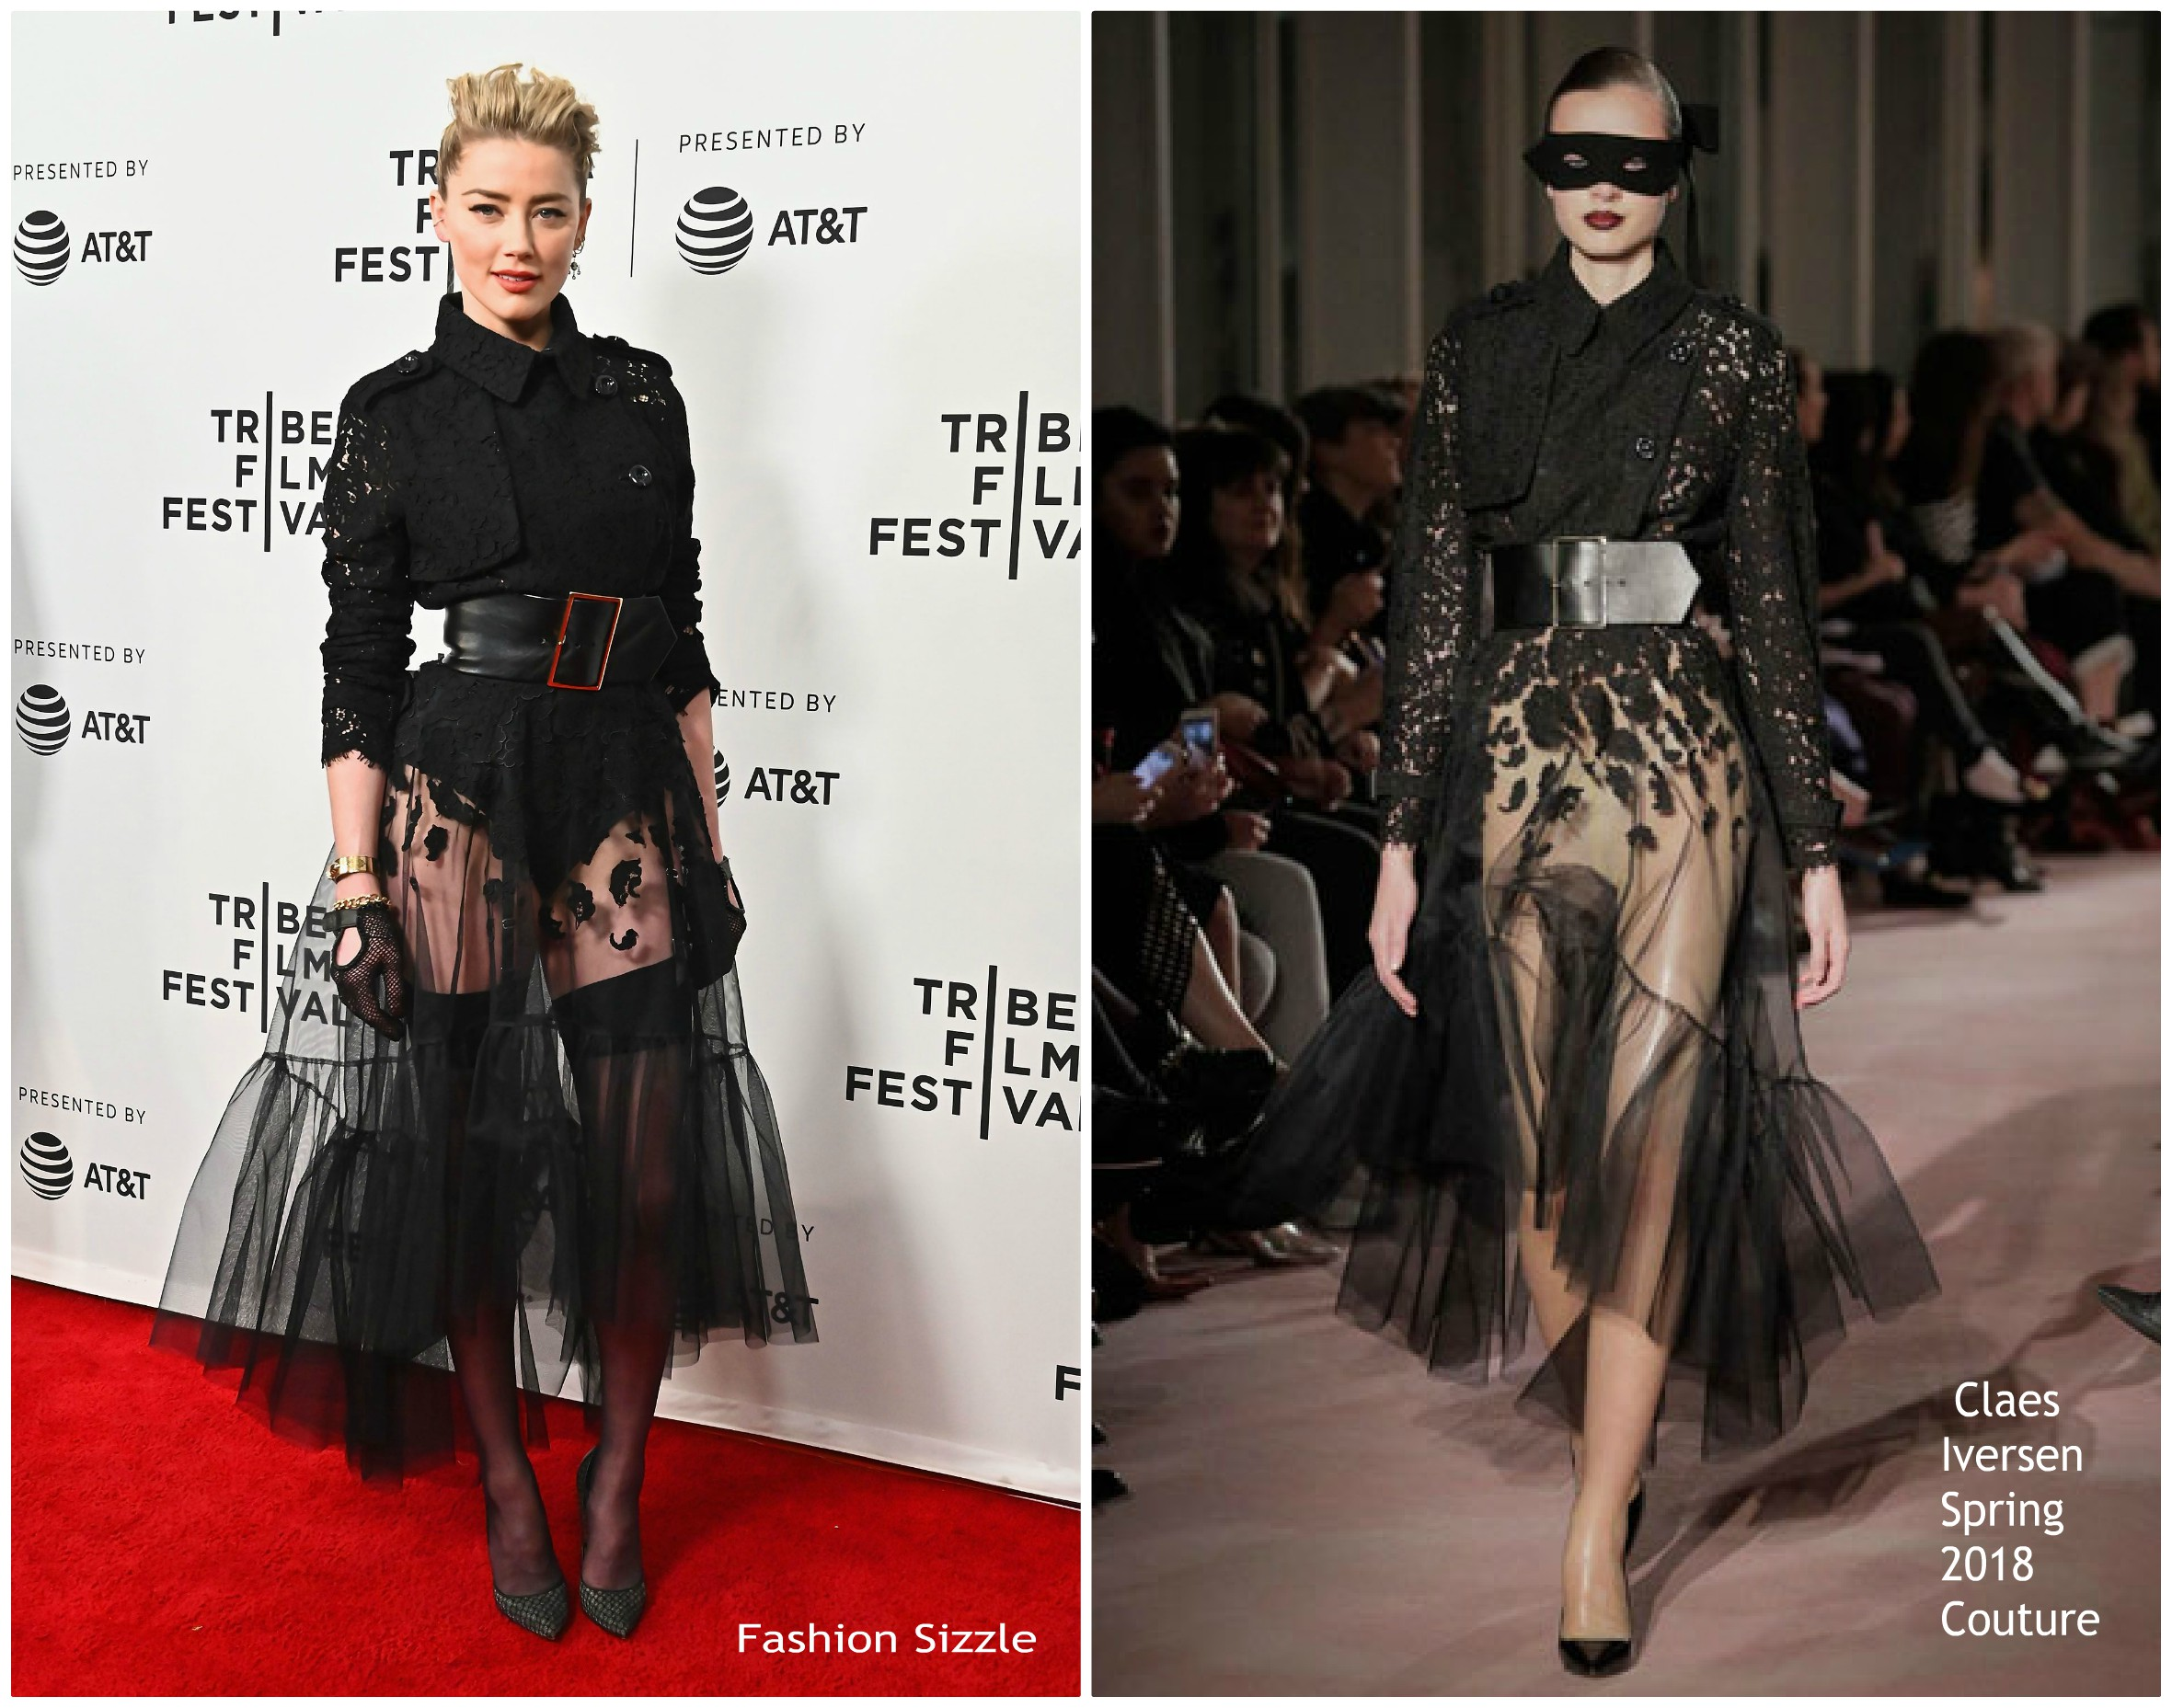 amber-heard-in-claes-iversen-gully-tribeca-film-festival-screening